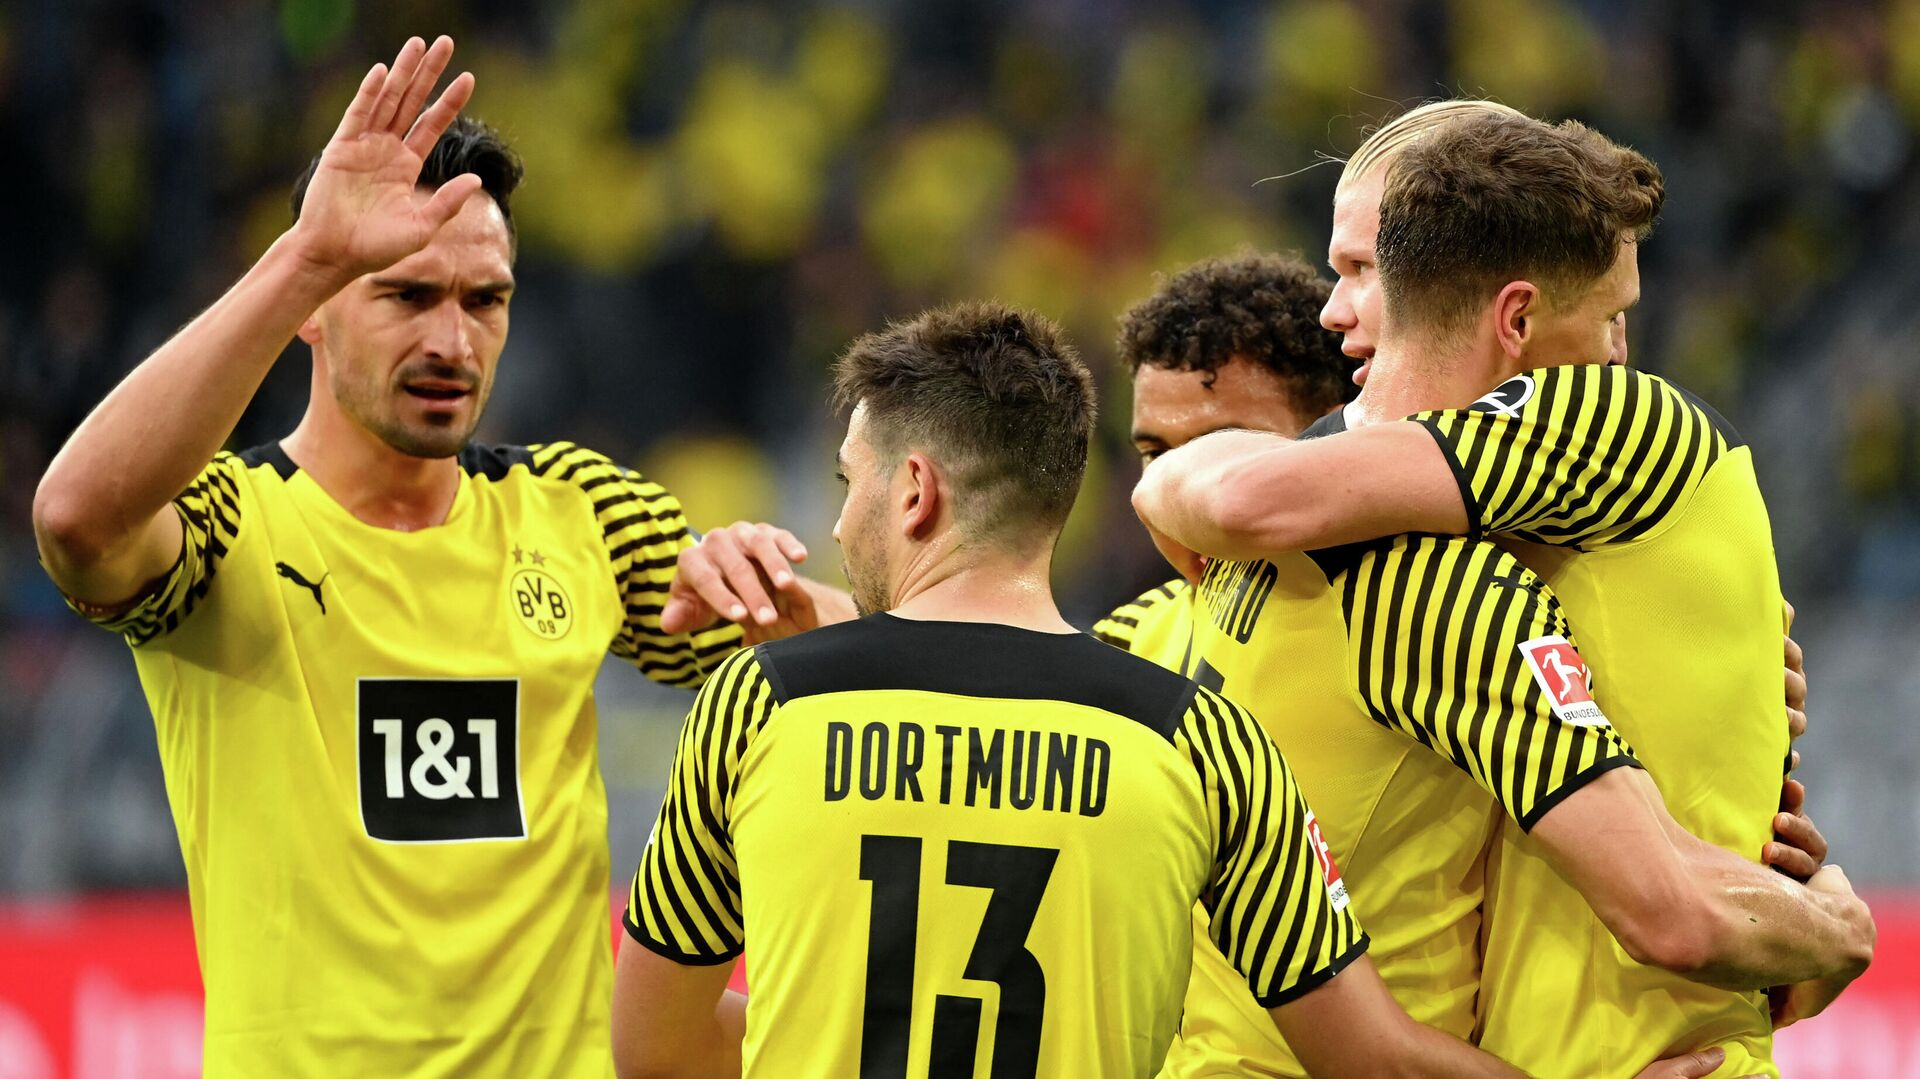 Dortmund's Norwegian forward Erling Braut Haaland (R) celebrates with Dortmund's German defender Mats Hummels (L), Dortmund's Portuguese defender Raphael Guerreiro (2nd L) and other teammates after scoring the 2-0 during the German first division Bundesliga football match Borussia Dortmund vs FC Union Berlin on September 19, 2021 in Dortmund, western Germany. (Photo by Ina Fassbender / AFP) / DFL REGULATIONS PROHIBIT ANY USE OF PHOTOGRAPHS AS IMAGE SEQUENCES AND/OR QUASI-VIDEO - РИА Новости, 1920, 19.09.2021